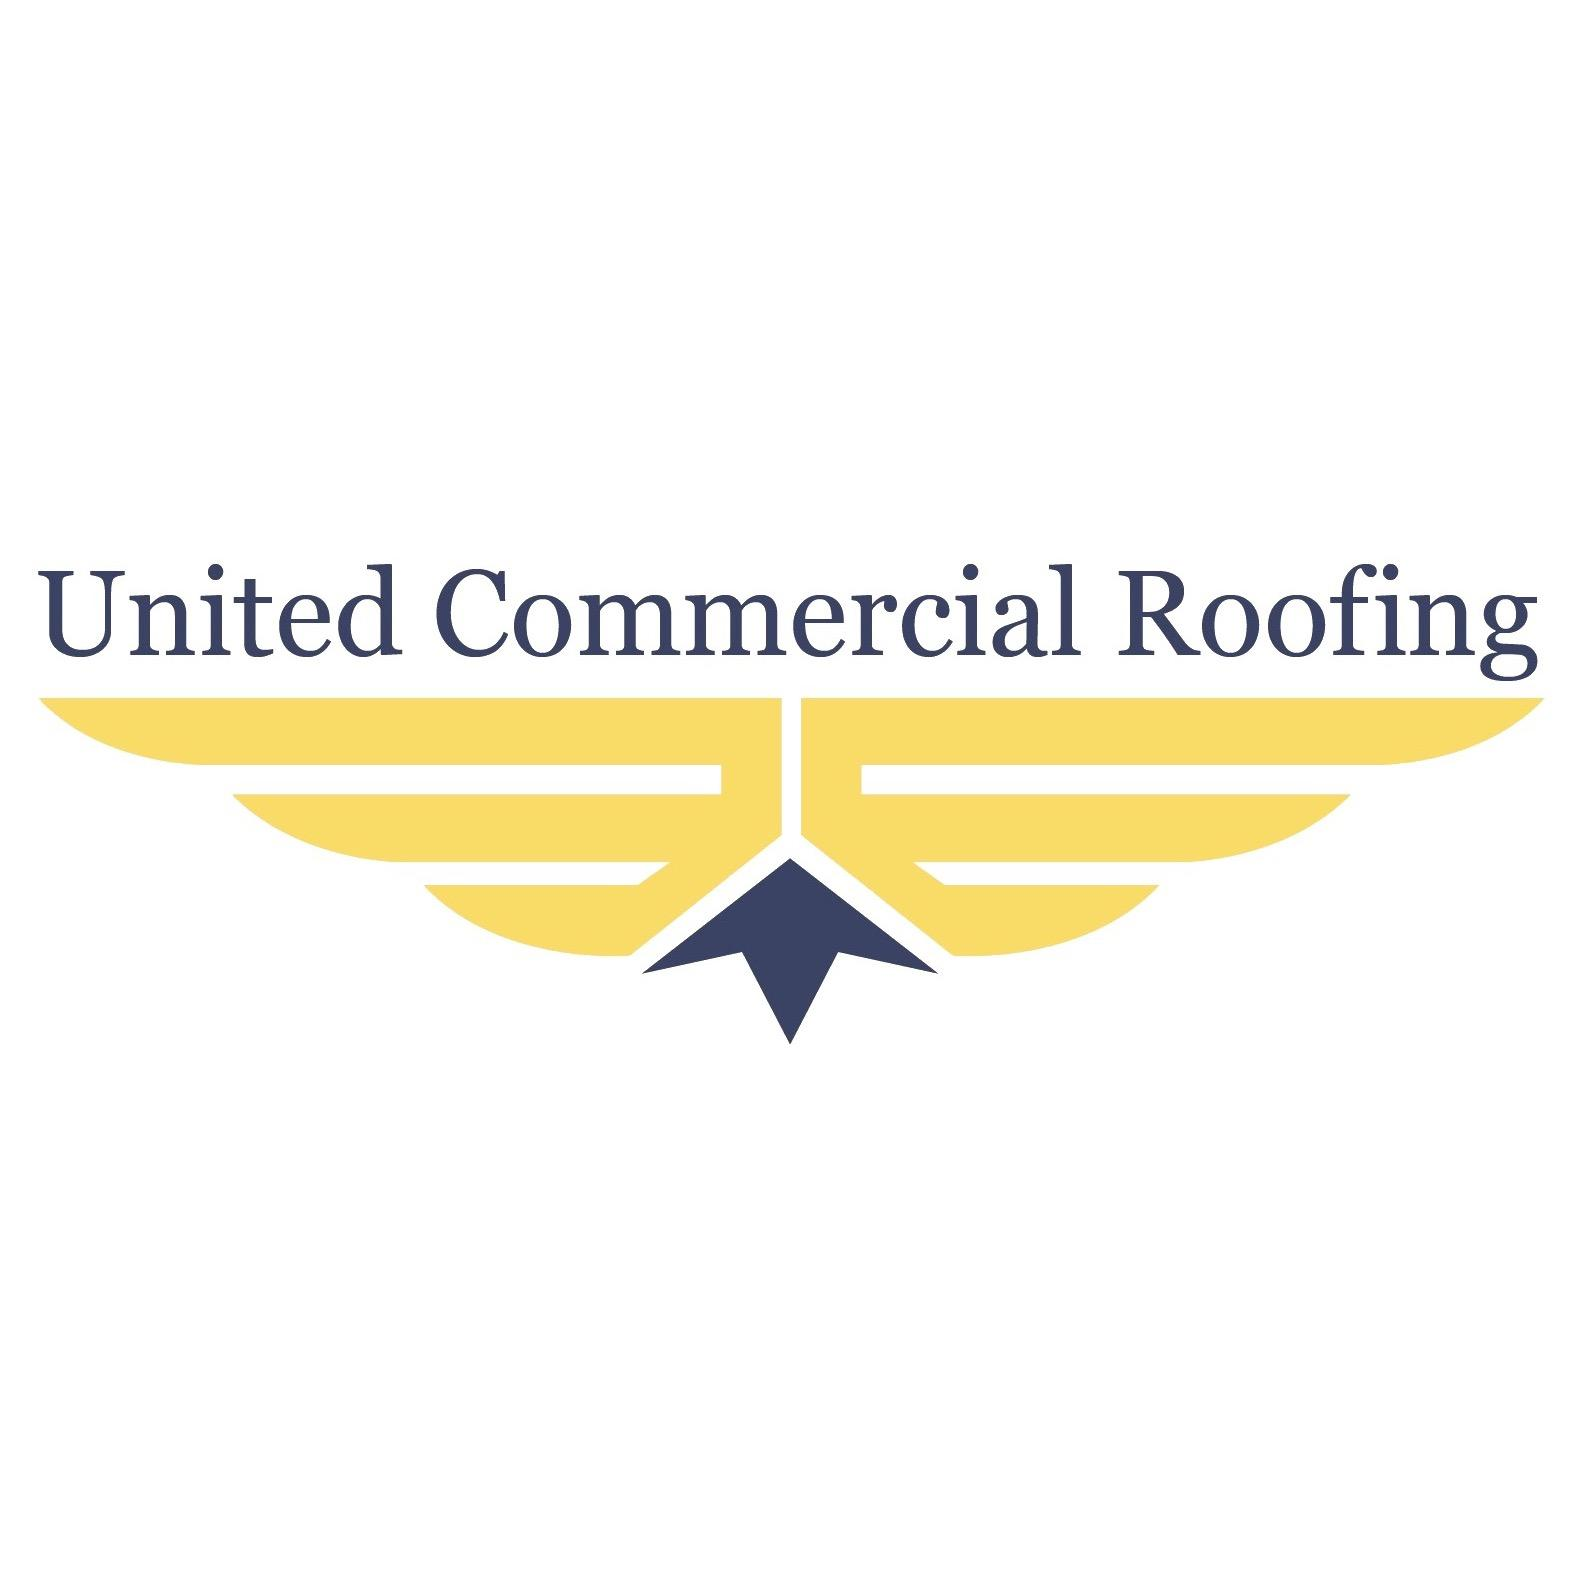 United Commercial Roofing